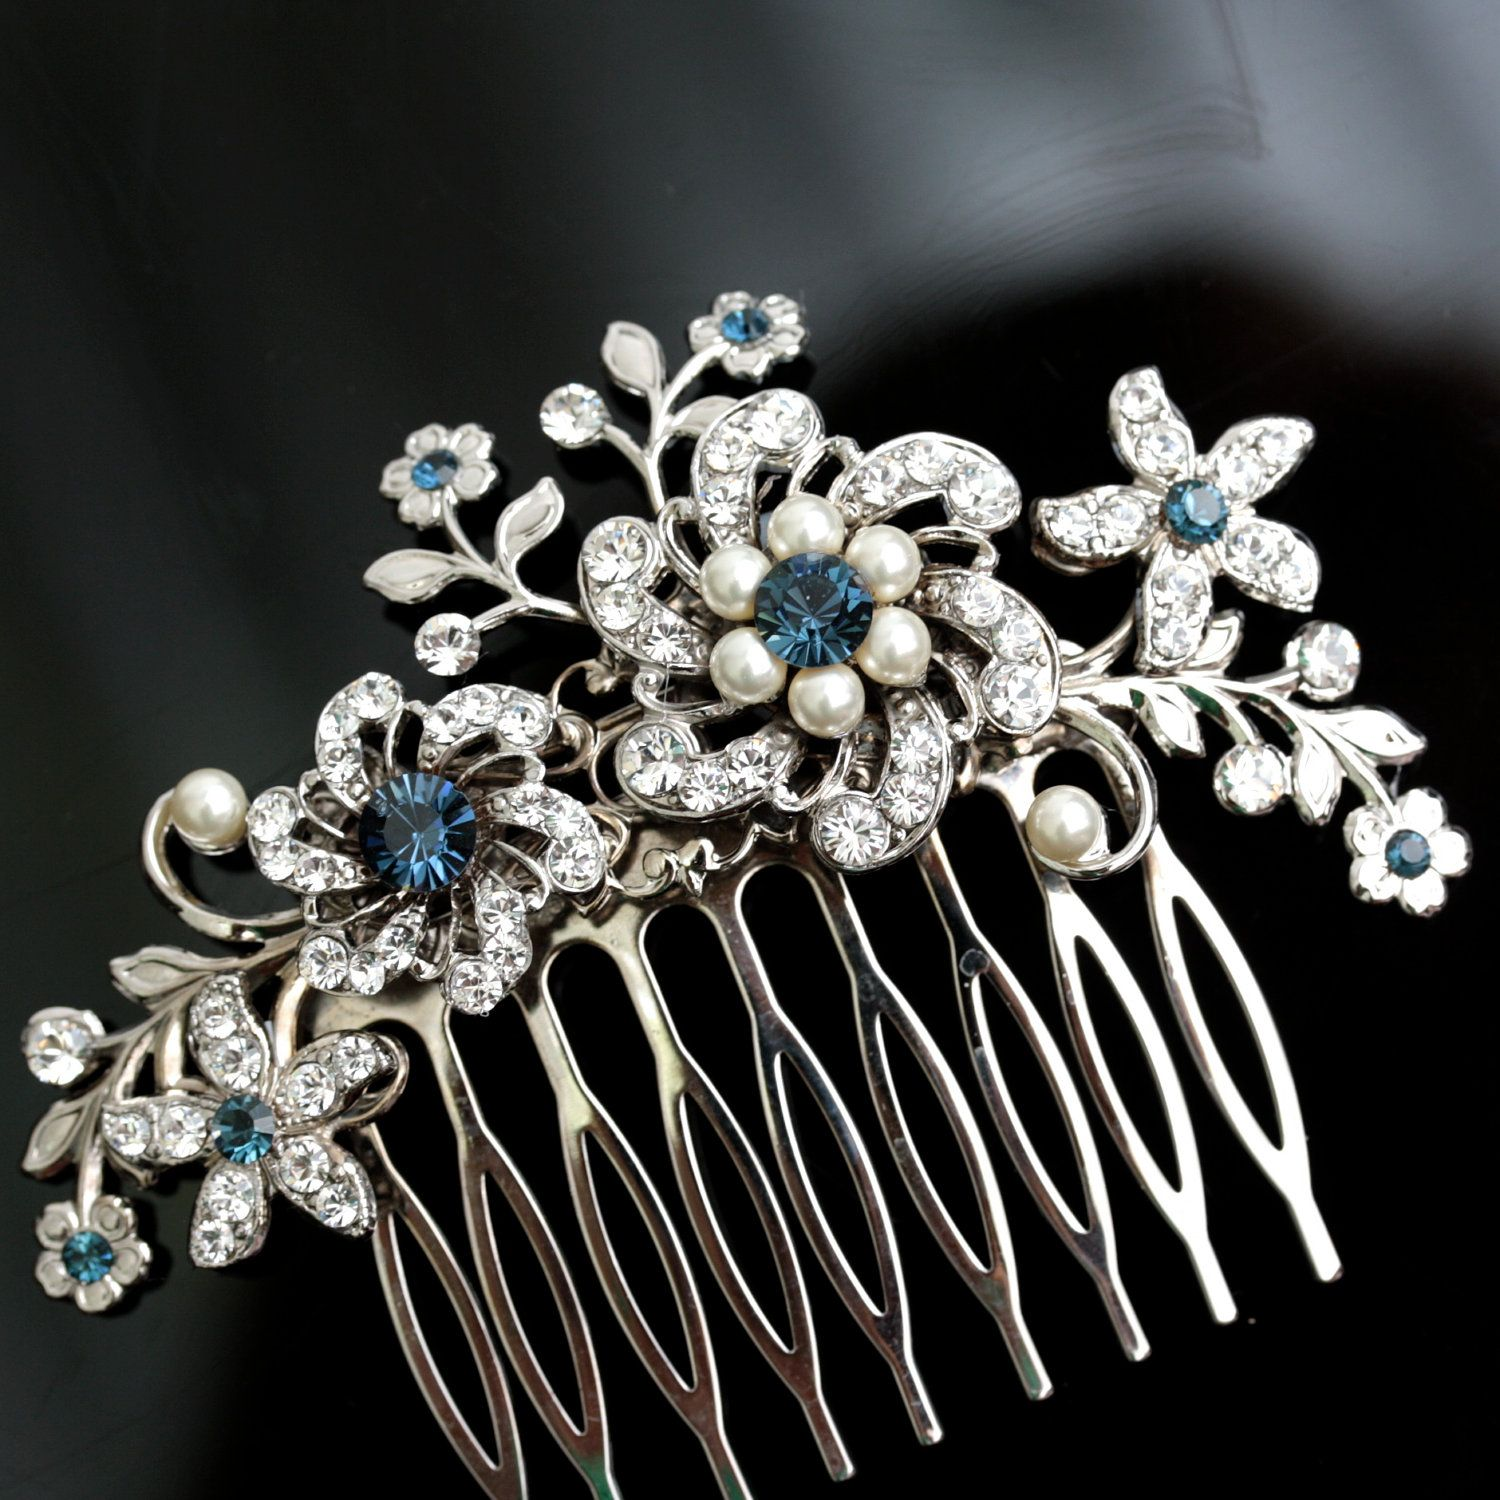 wedding hair comb rhinestone flowers and vintage leaves montana blue wedding hair accessories bridal side comb ivory pearl sabine 87 00 via etsy